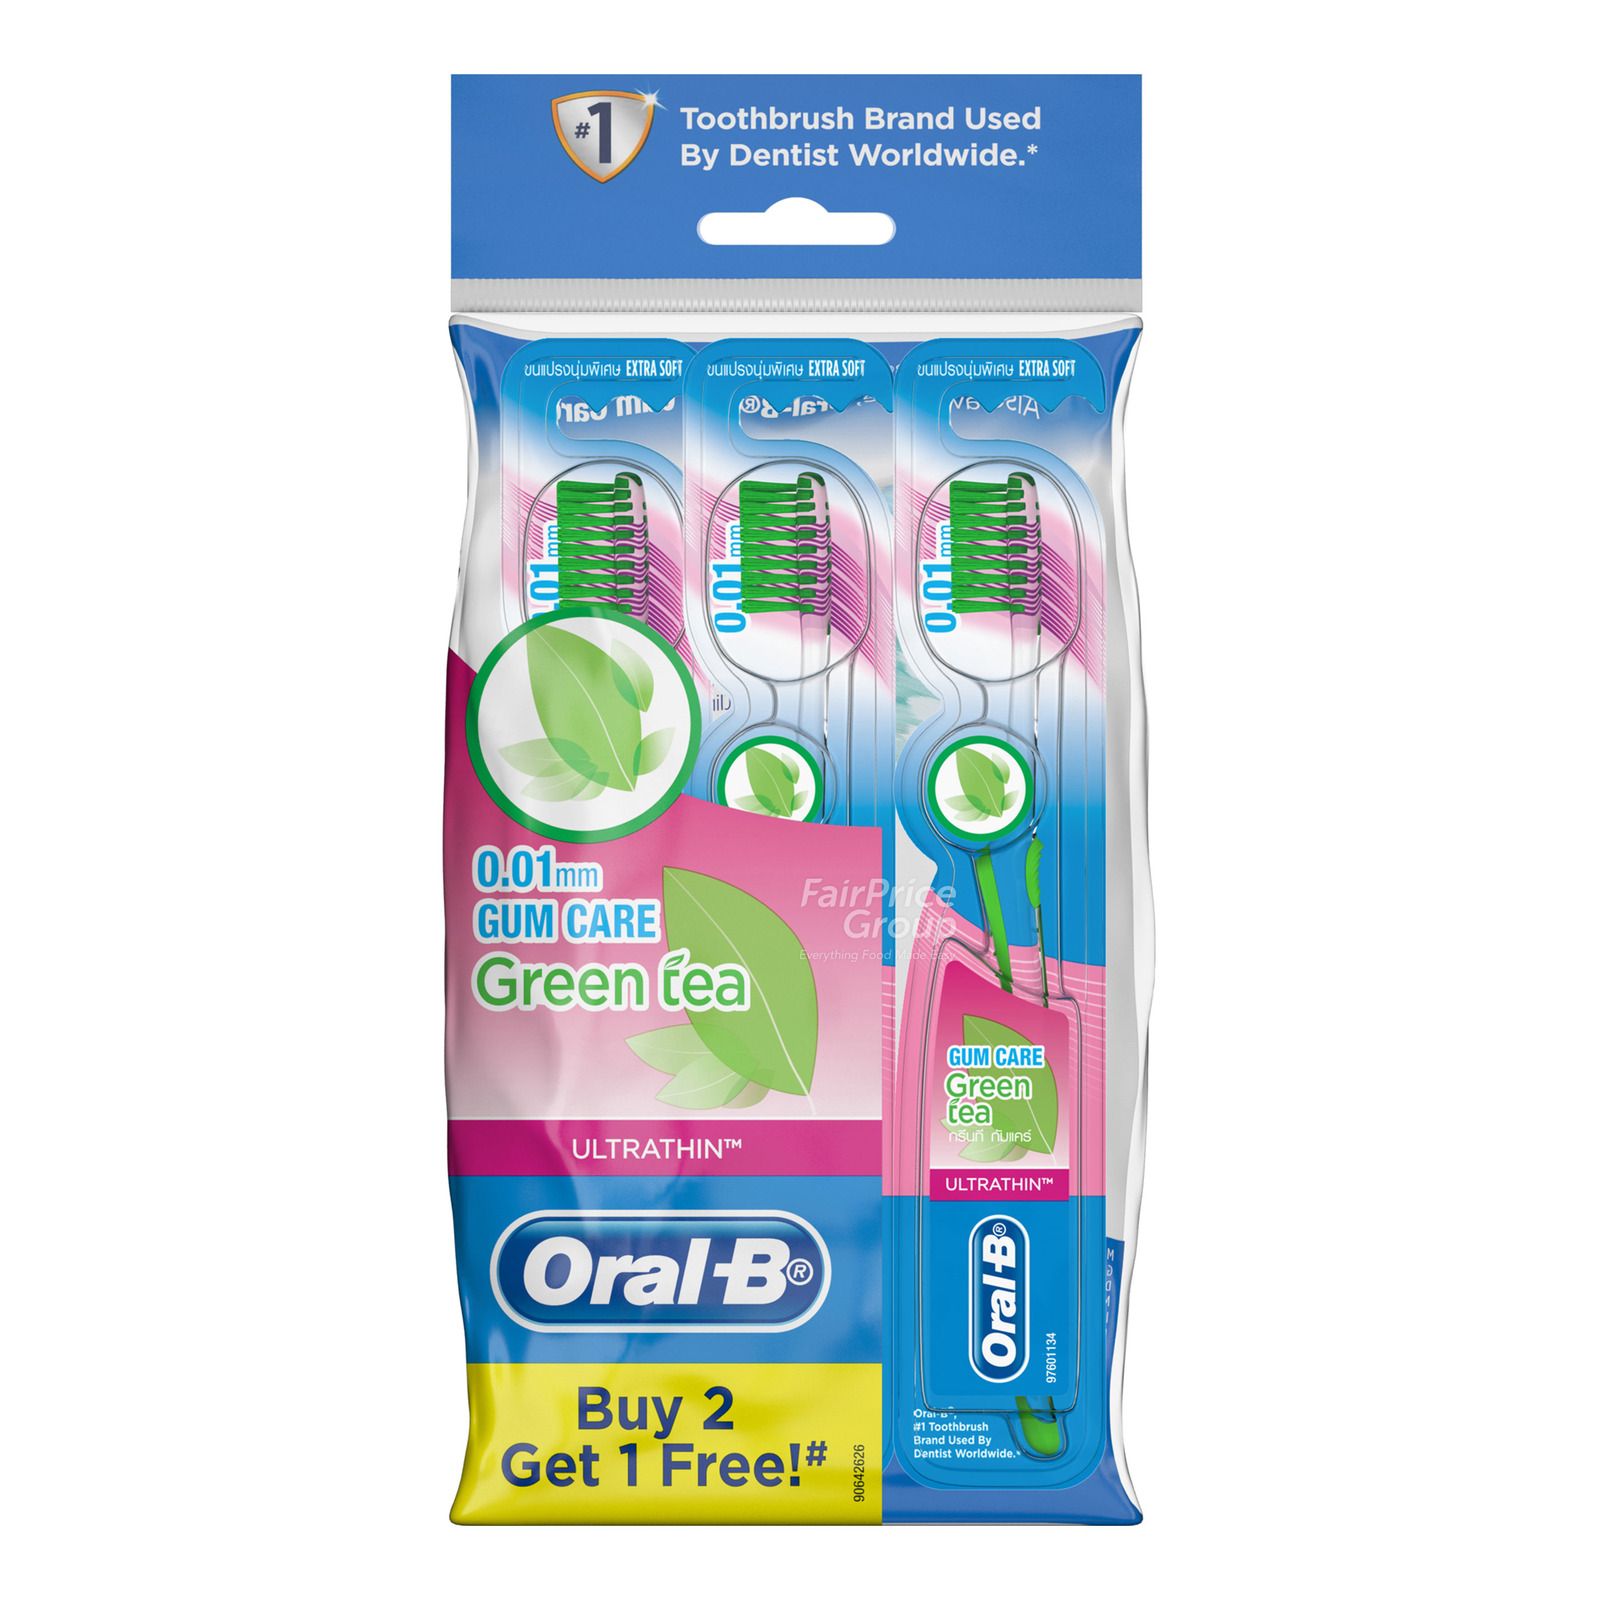 Oral-B Ultra Thin Toothbrush - Gum Care (Green Tea)